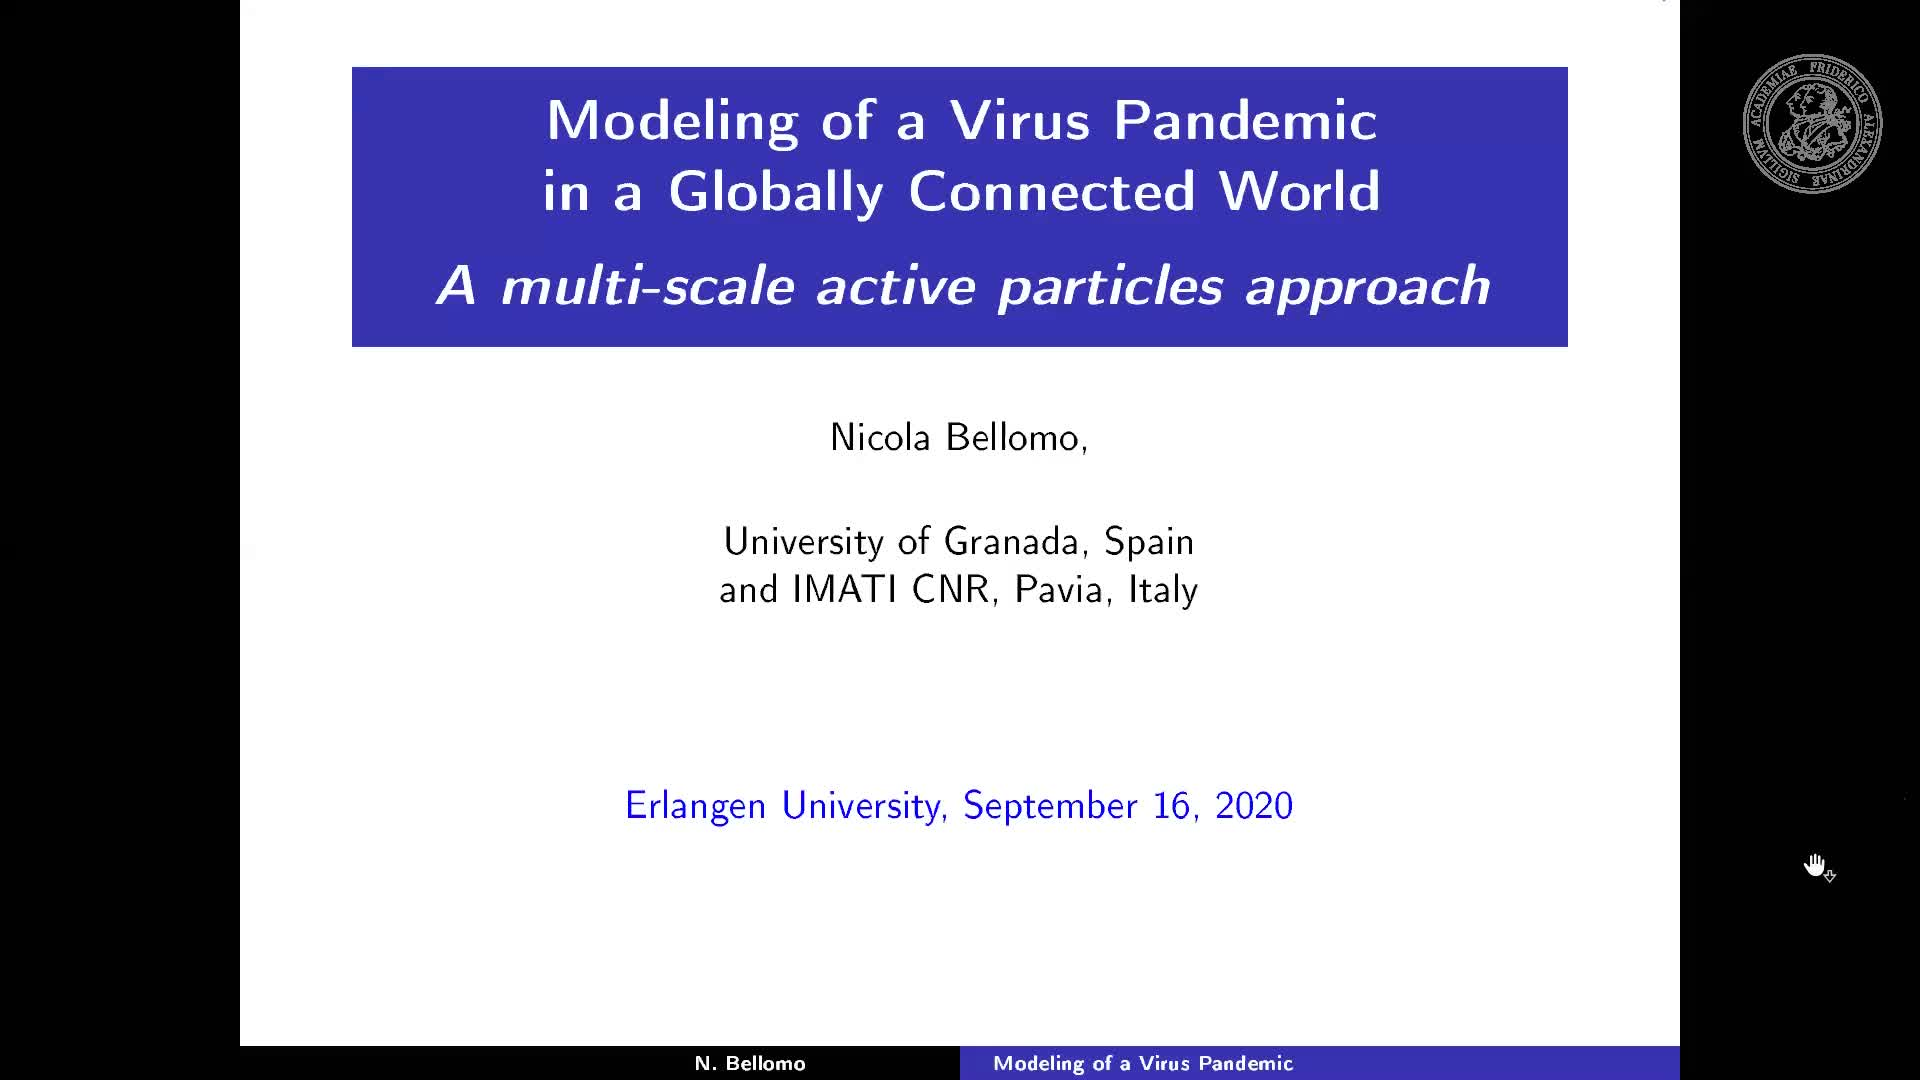 Modeling of a Virus Pandemic in a Globally Connected World: A multi-scale active particles approach preview image